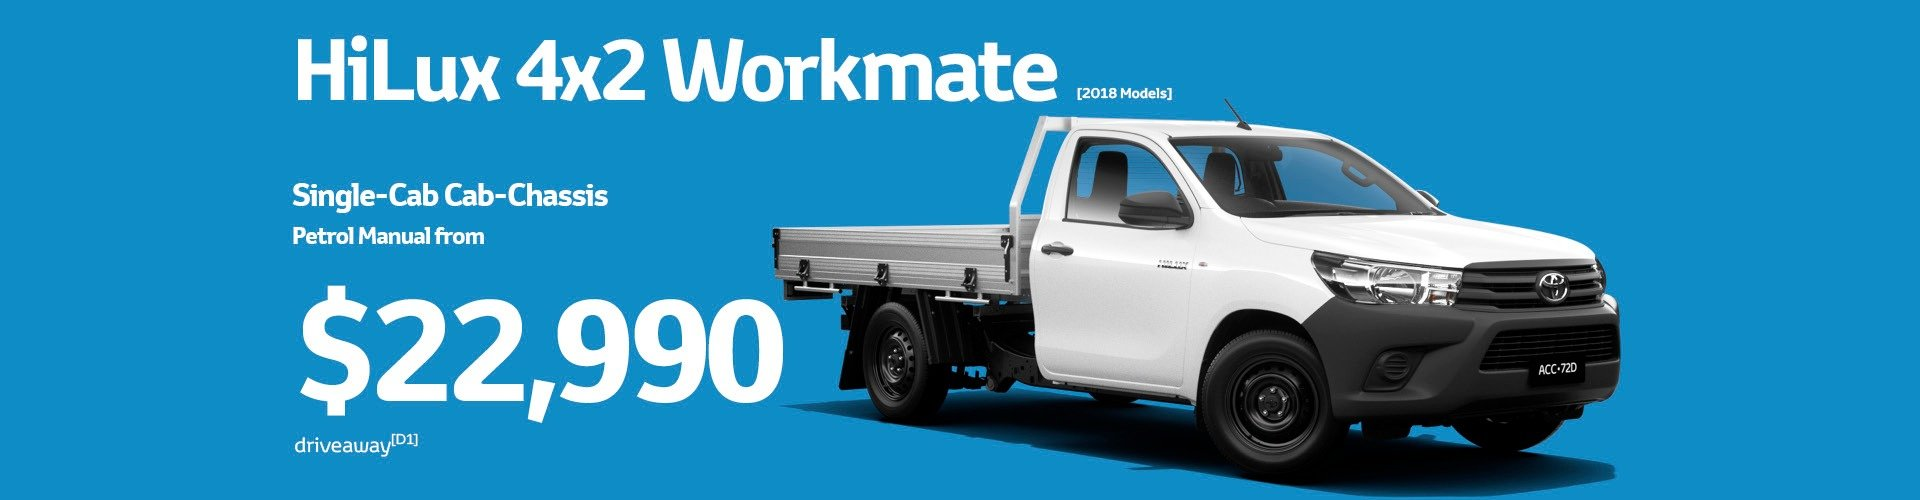 HiLux, Australia's #1 Selling Vehicle in 2018